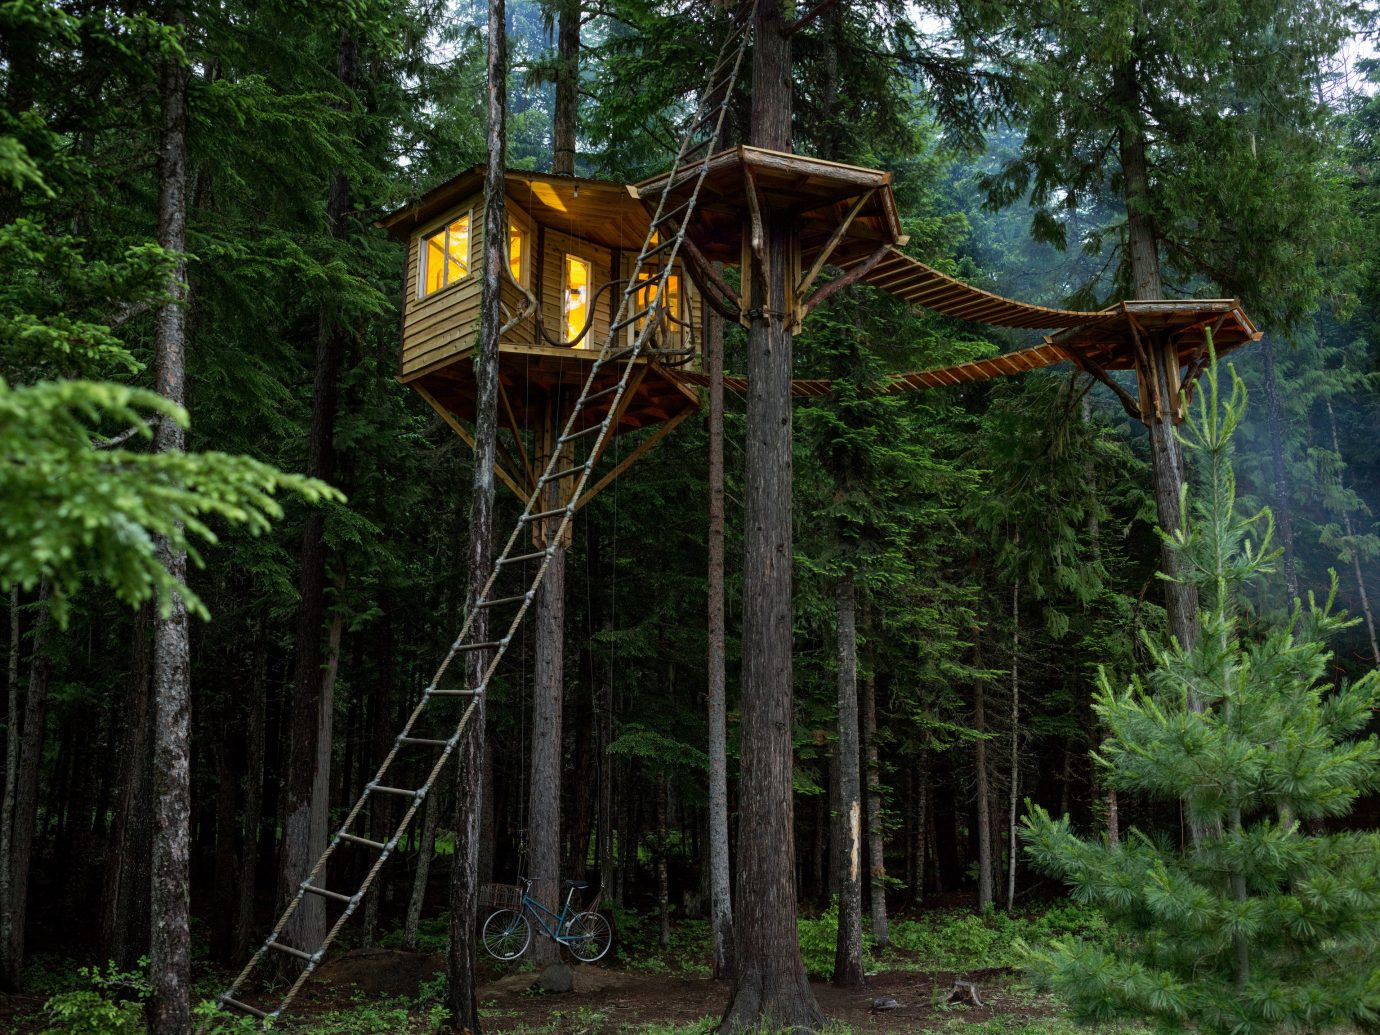 Arts + Culture tree outdoor habitat Nature wilderness Forest natural environment woodland woody plant rainforest Jungle outdoor structure tree house area wooded wood lush